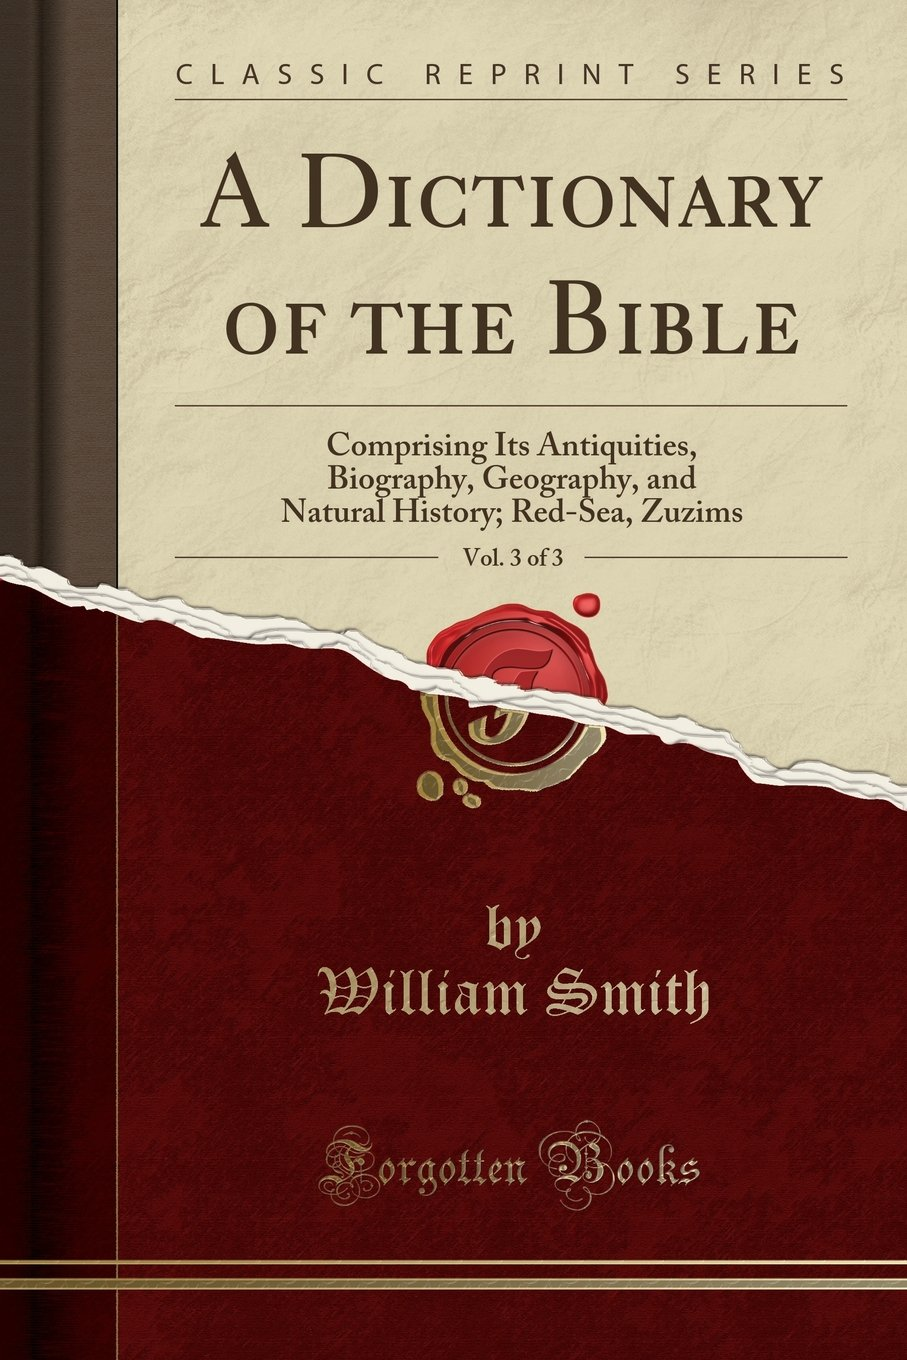 Read Online A Dictionary of the Bible, Vol. 3 of 3: Comprising Its Antiquities, Biography, Geography, and Natural History; Red-Sea, Zuzims (Classic Reprint) pdf epub